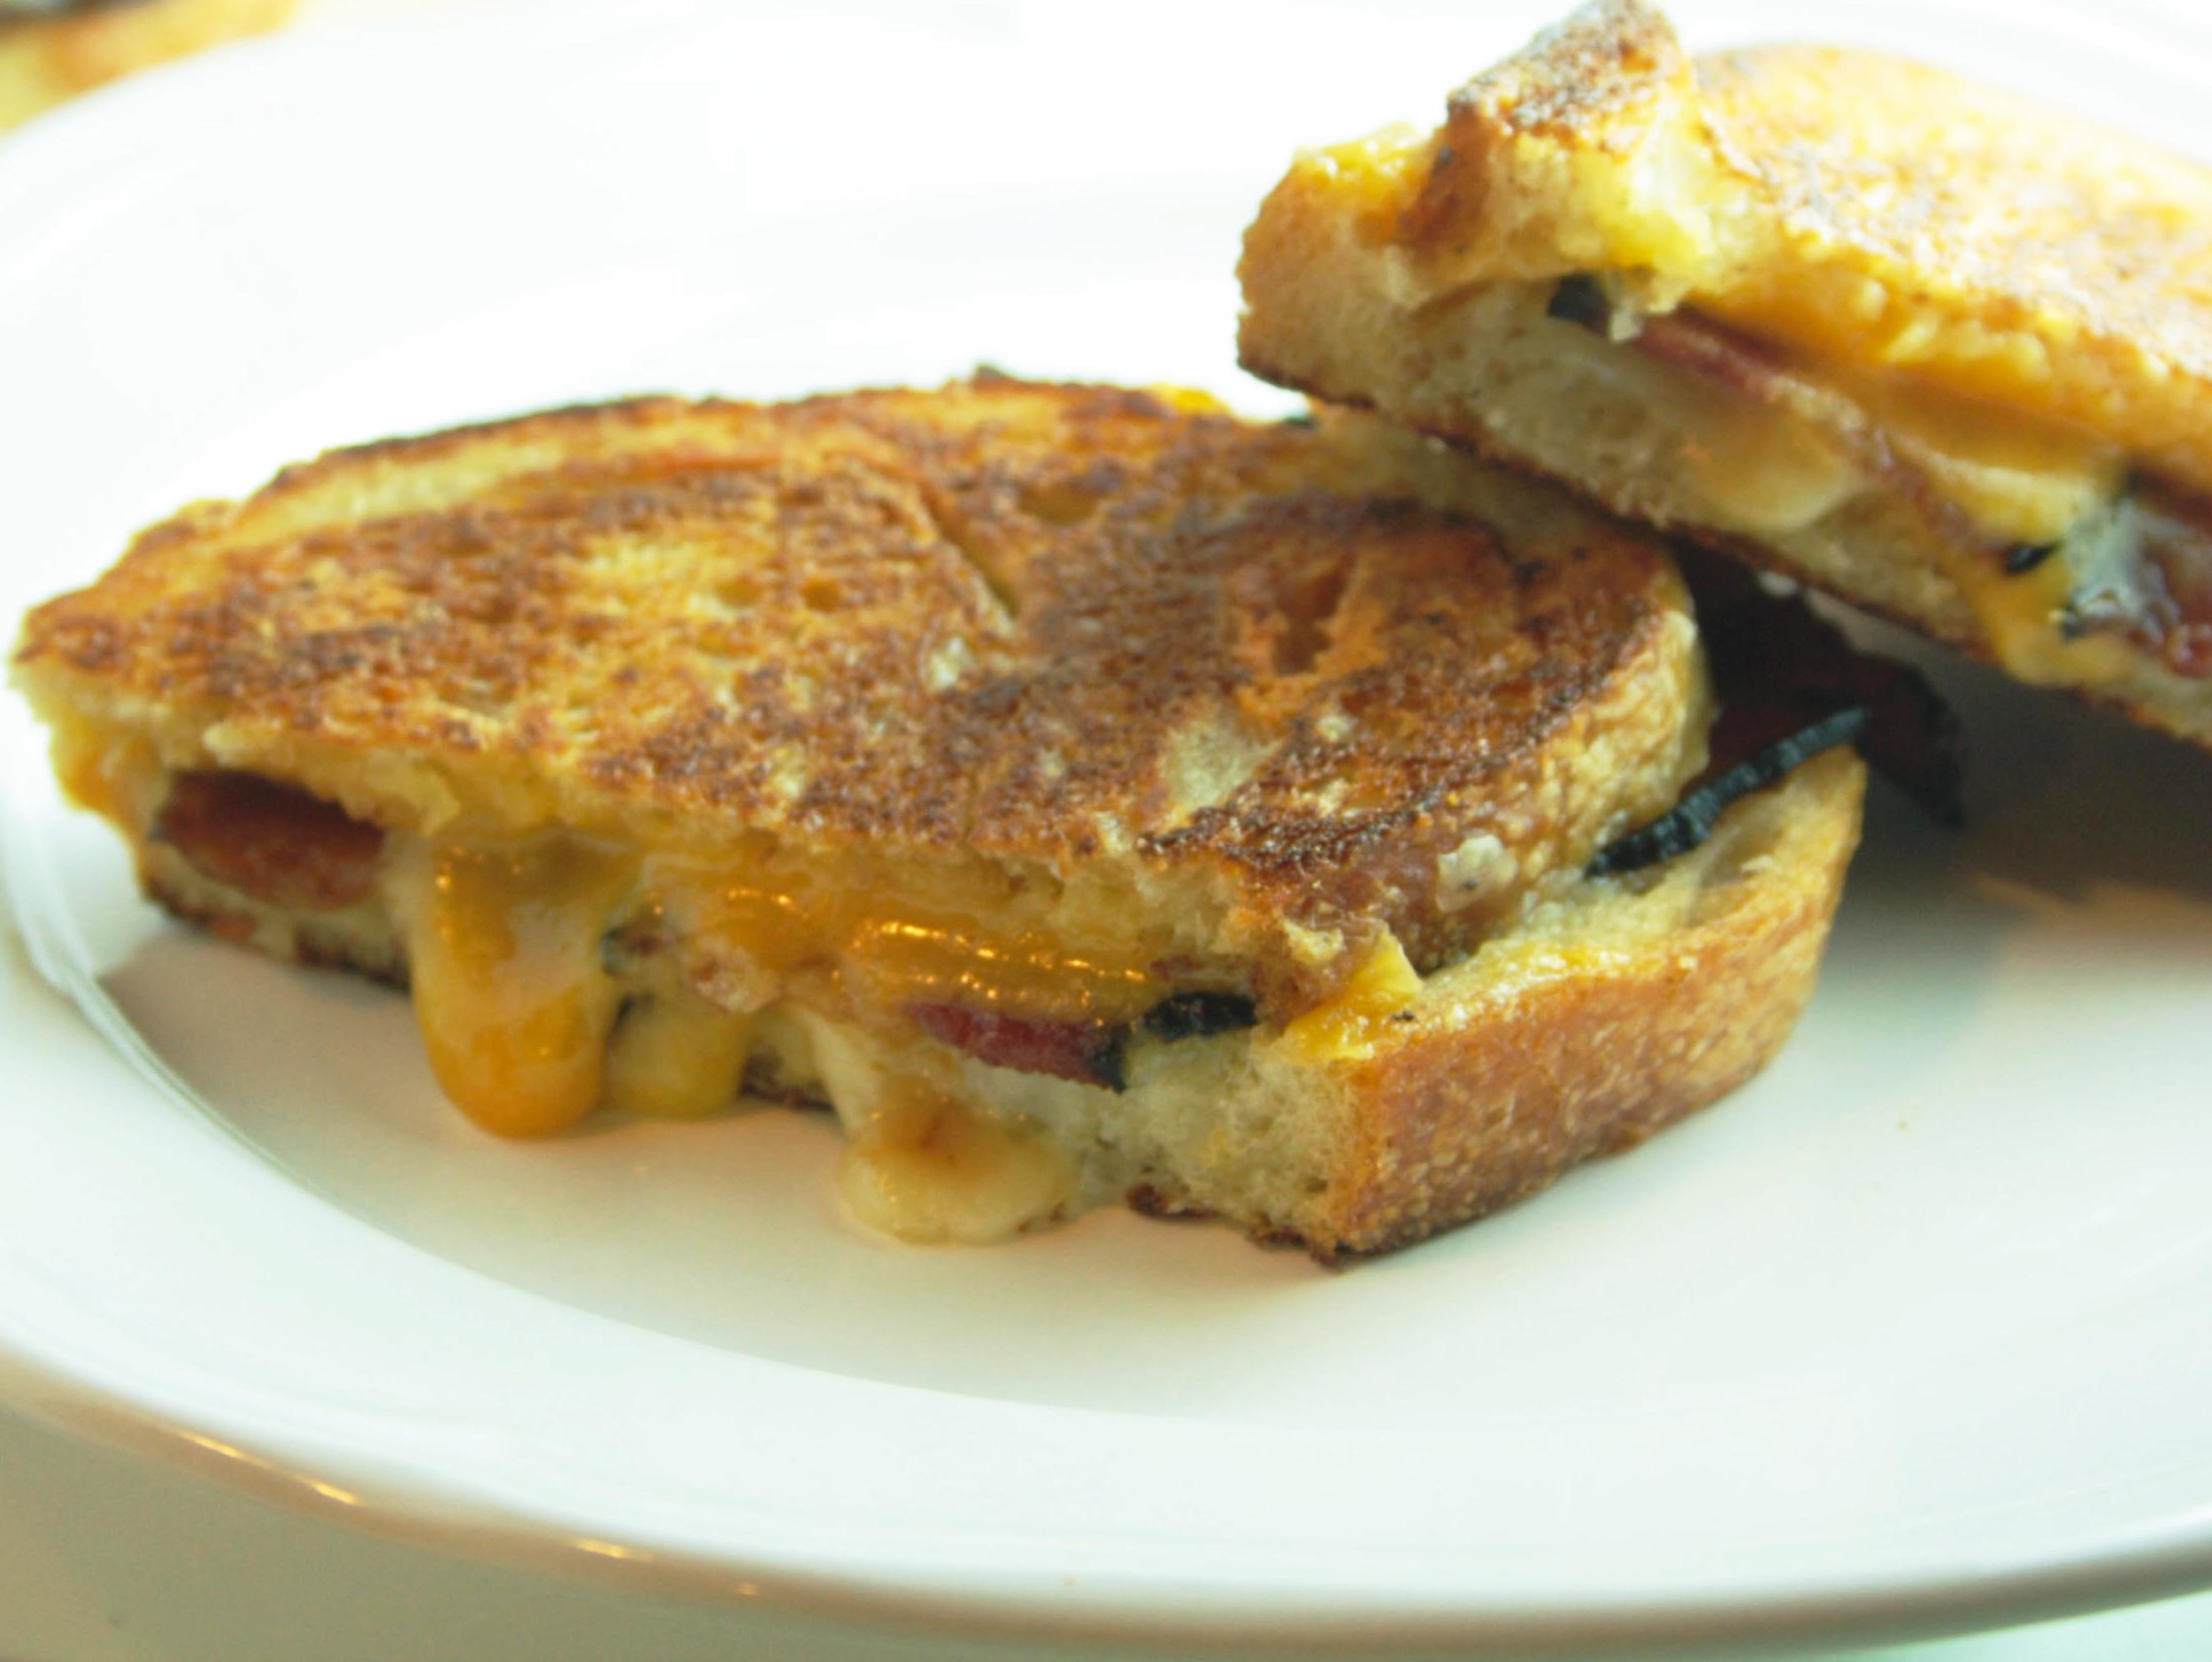 Bacon and Grilled Cheese Sandwich with Homemade Ketchup